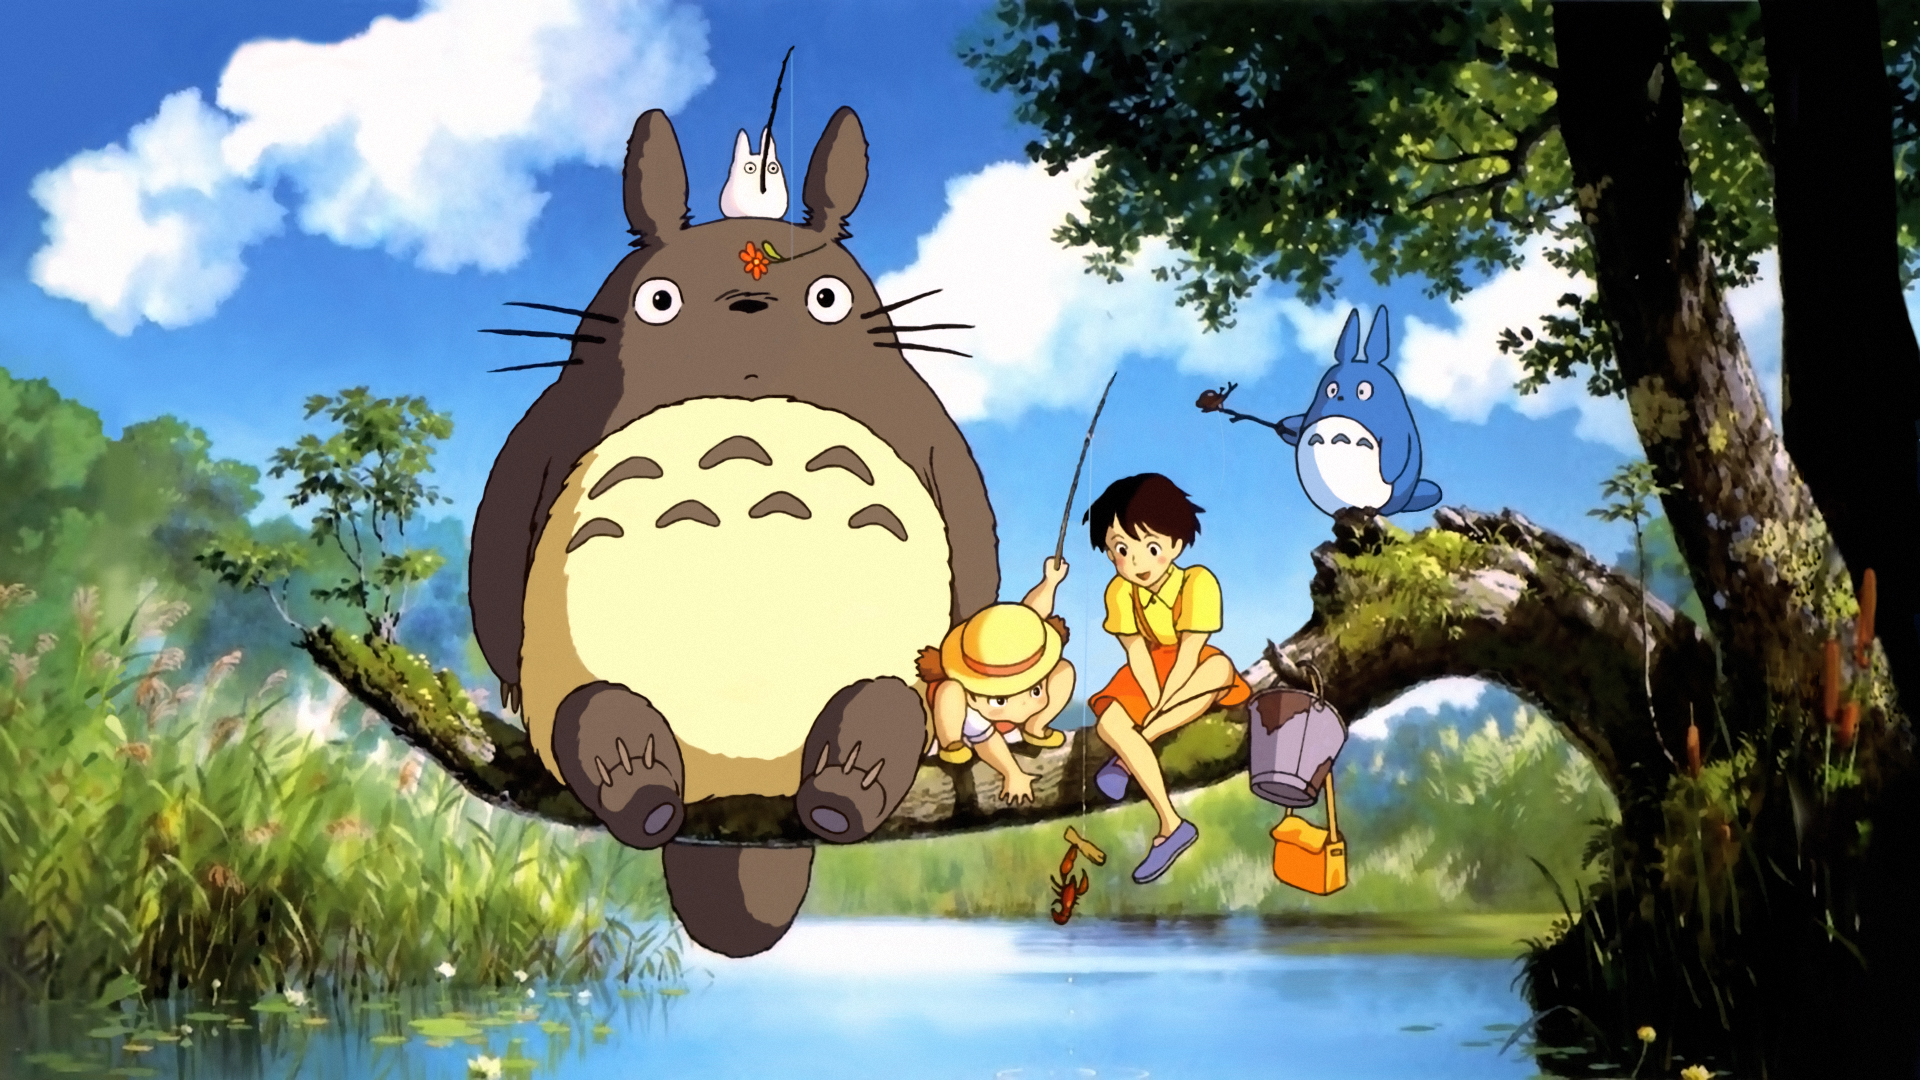 Tonari no Totoro Wallpaper 1 by ihateyouare